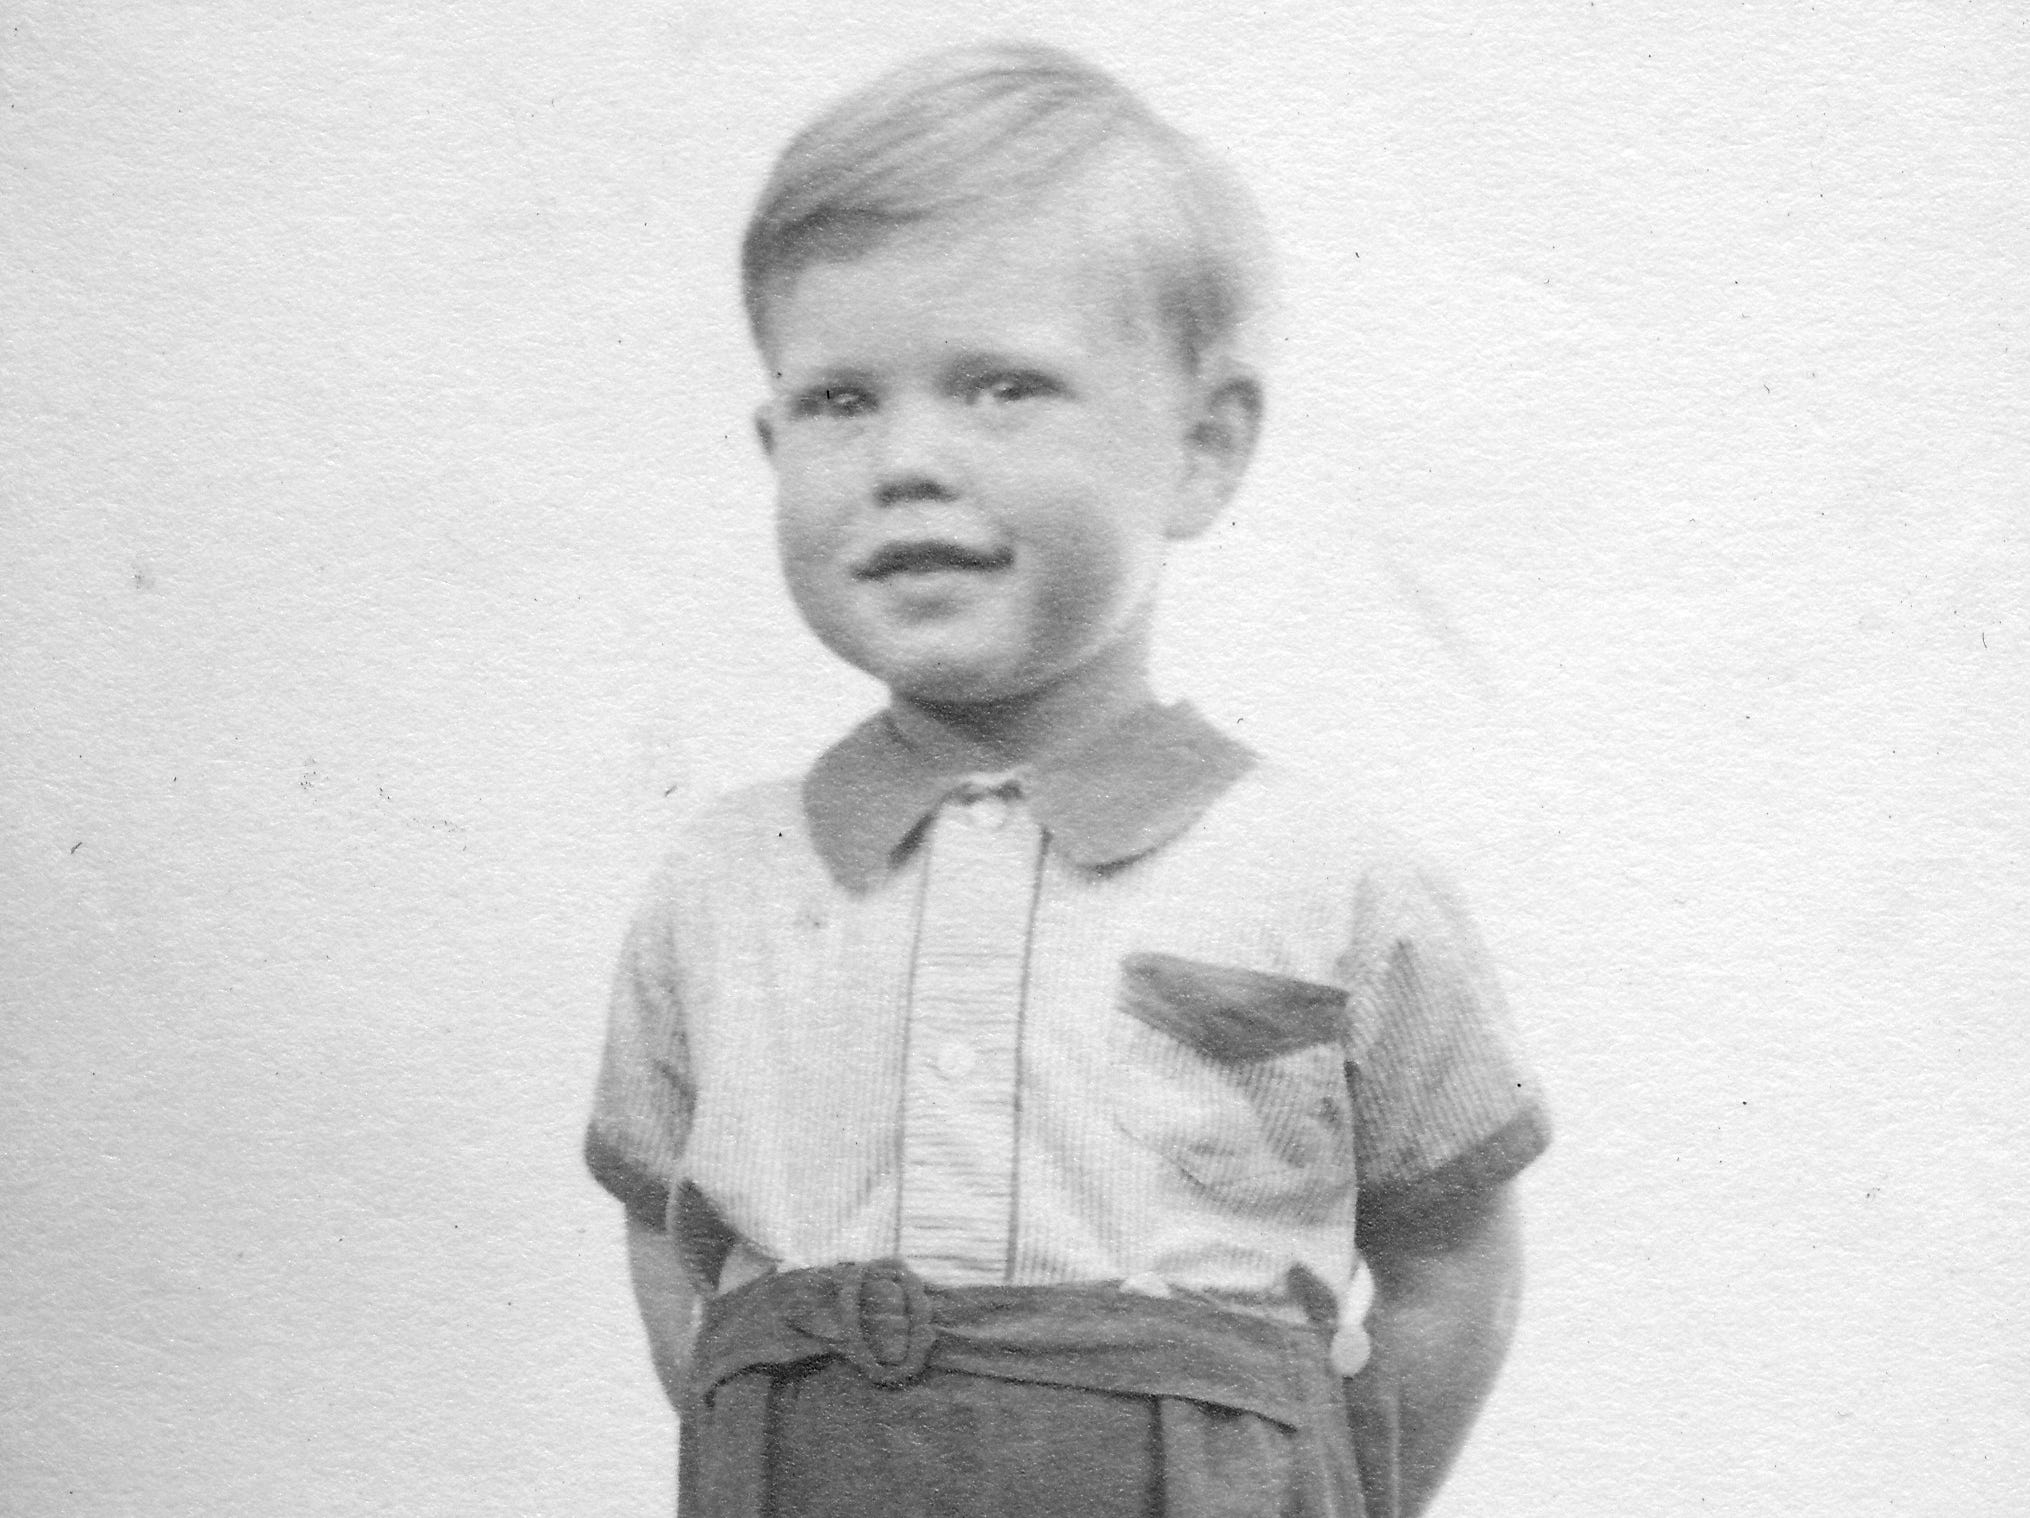 DARTFORD,UNITED KINGDOM - CIRCA 1946:  (EMBARGOED FOR PRINT USAGE UNTIL THURSDAY JULY 2ND 2015) Mick Jagger (aged 3) looking smart at home in Brent Lane, Dartford (1946). This previously unseen image will form part of The Rolling Stones - 'Exhibitionism' at Londons Saatchi Gallery.  Mick Jagger, Keith Richards, Charlie Watts and Ronnie Wood have opened their personal archives and found never before seen photographs of themselves as youngsters. These along with hundreds more rare and unseen images will create the first ever international Rolling Stones exhibition which will open at the Saatchi Gallery in April 2016. (Photo by Stones Archive/Getty Images) ORG XMIT: 561825389 ORIG FILE ID: 479111232